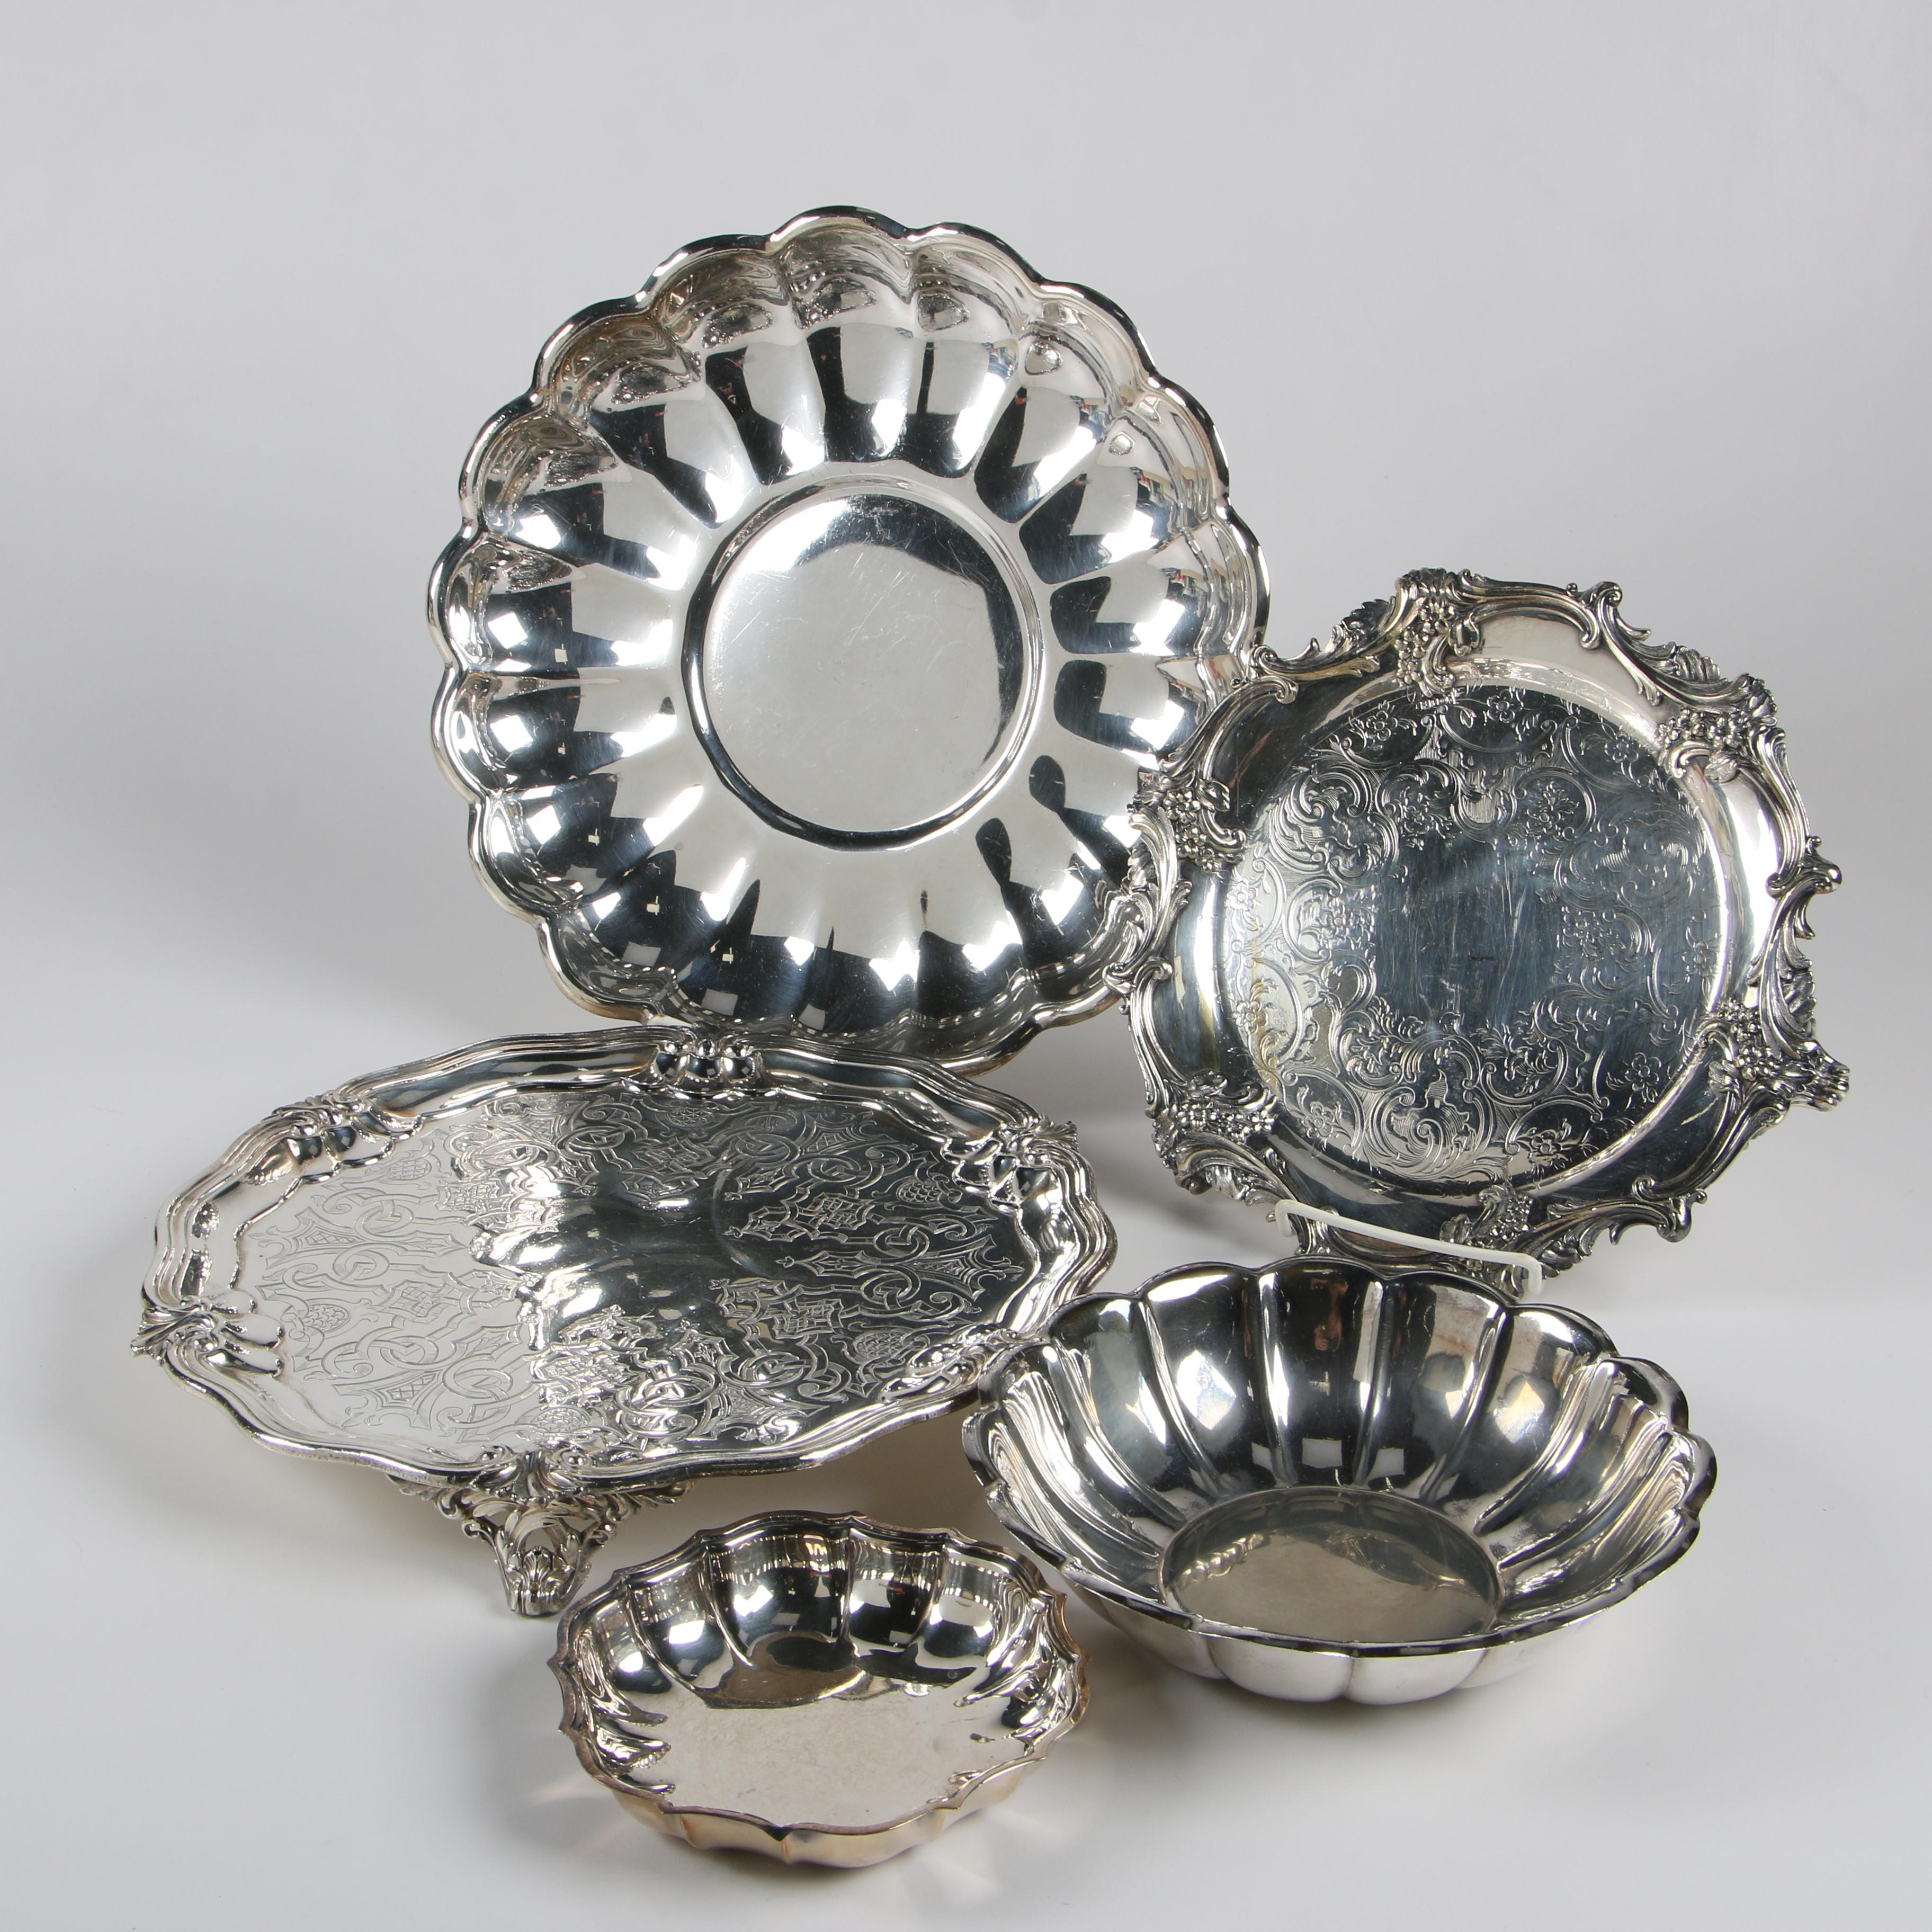 Reed & Barton and Chippendale International Silver Plate Serveware